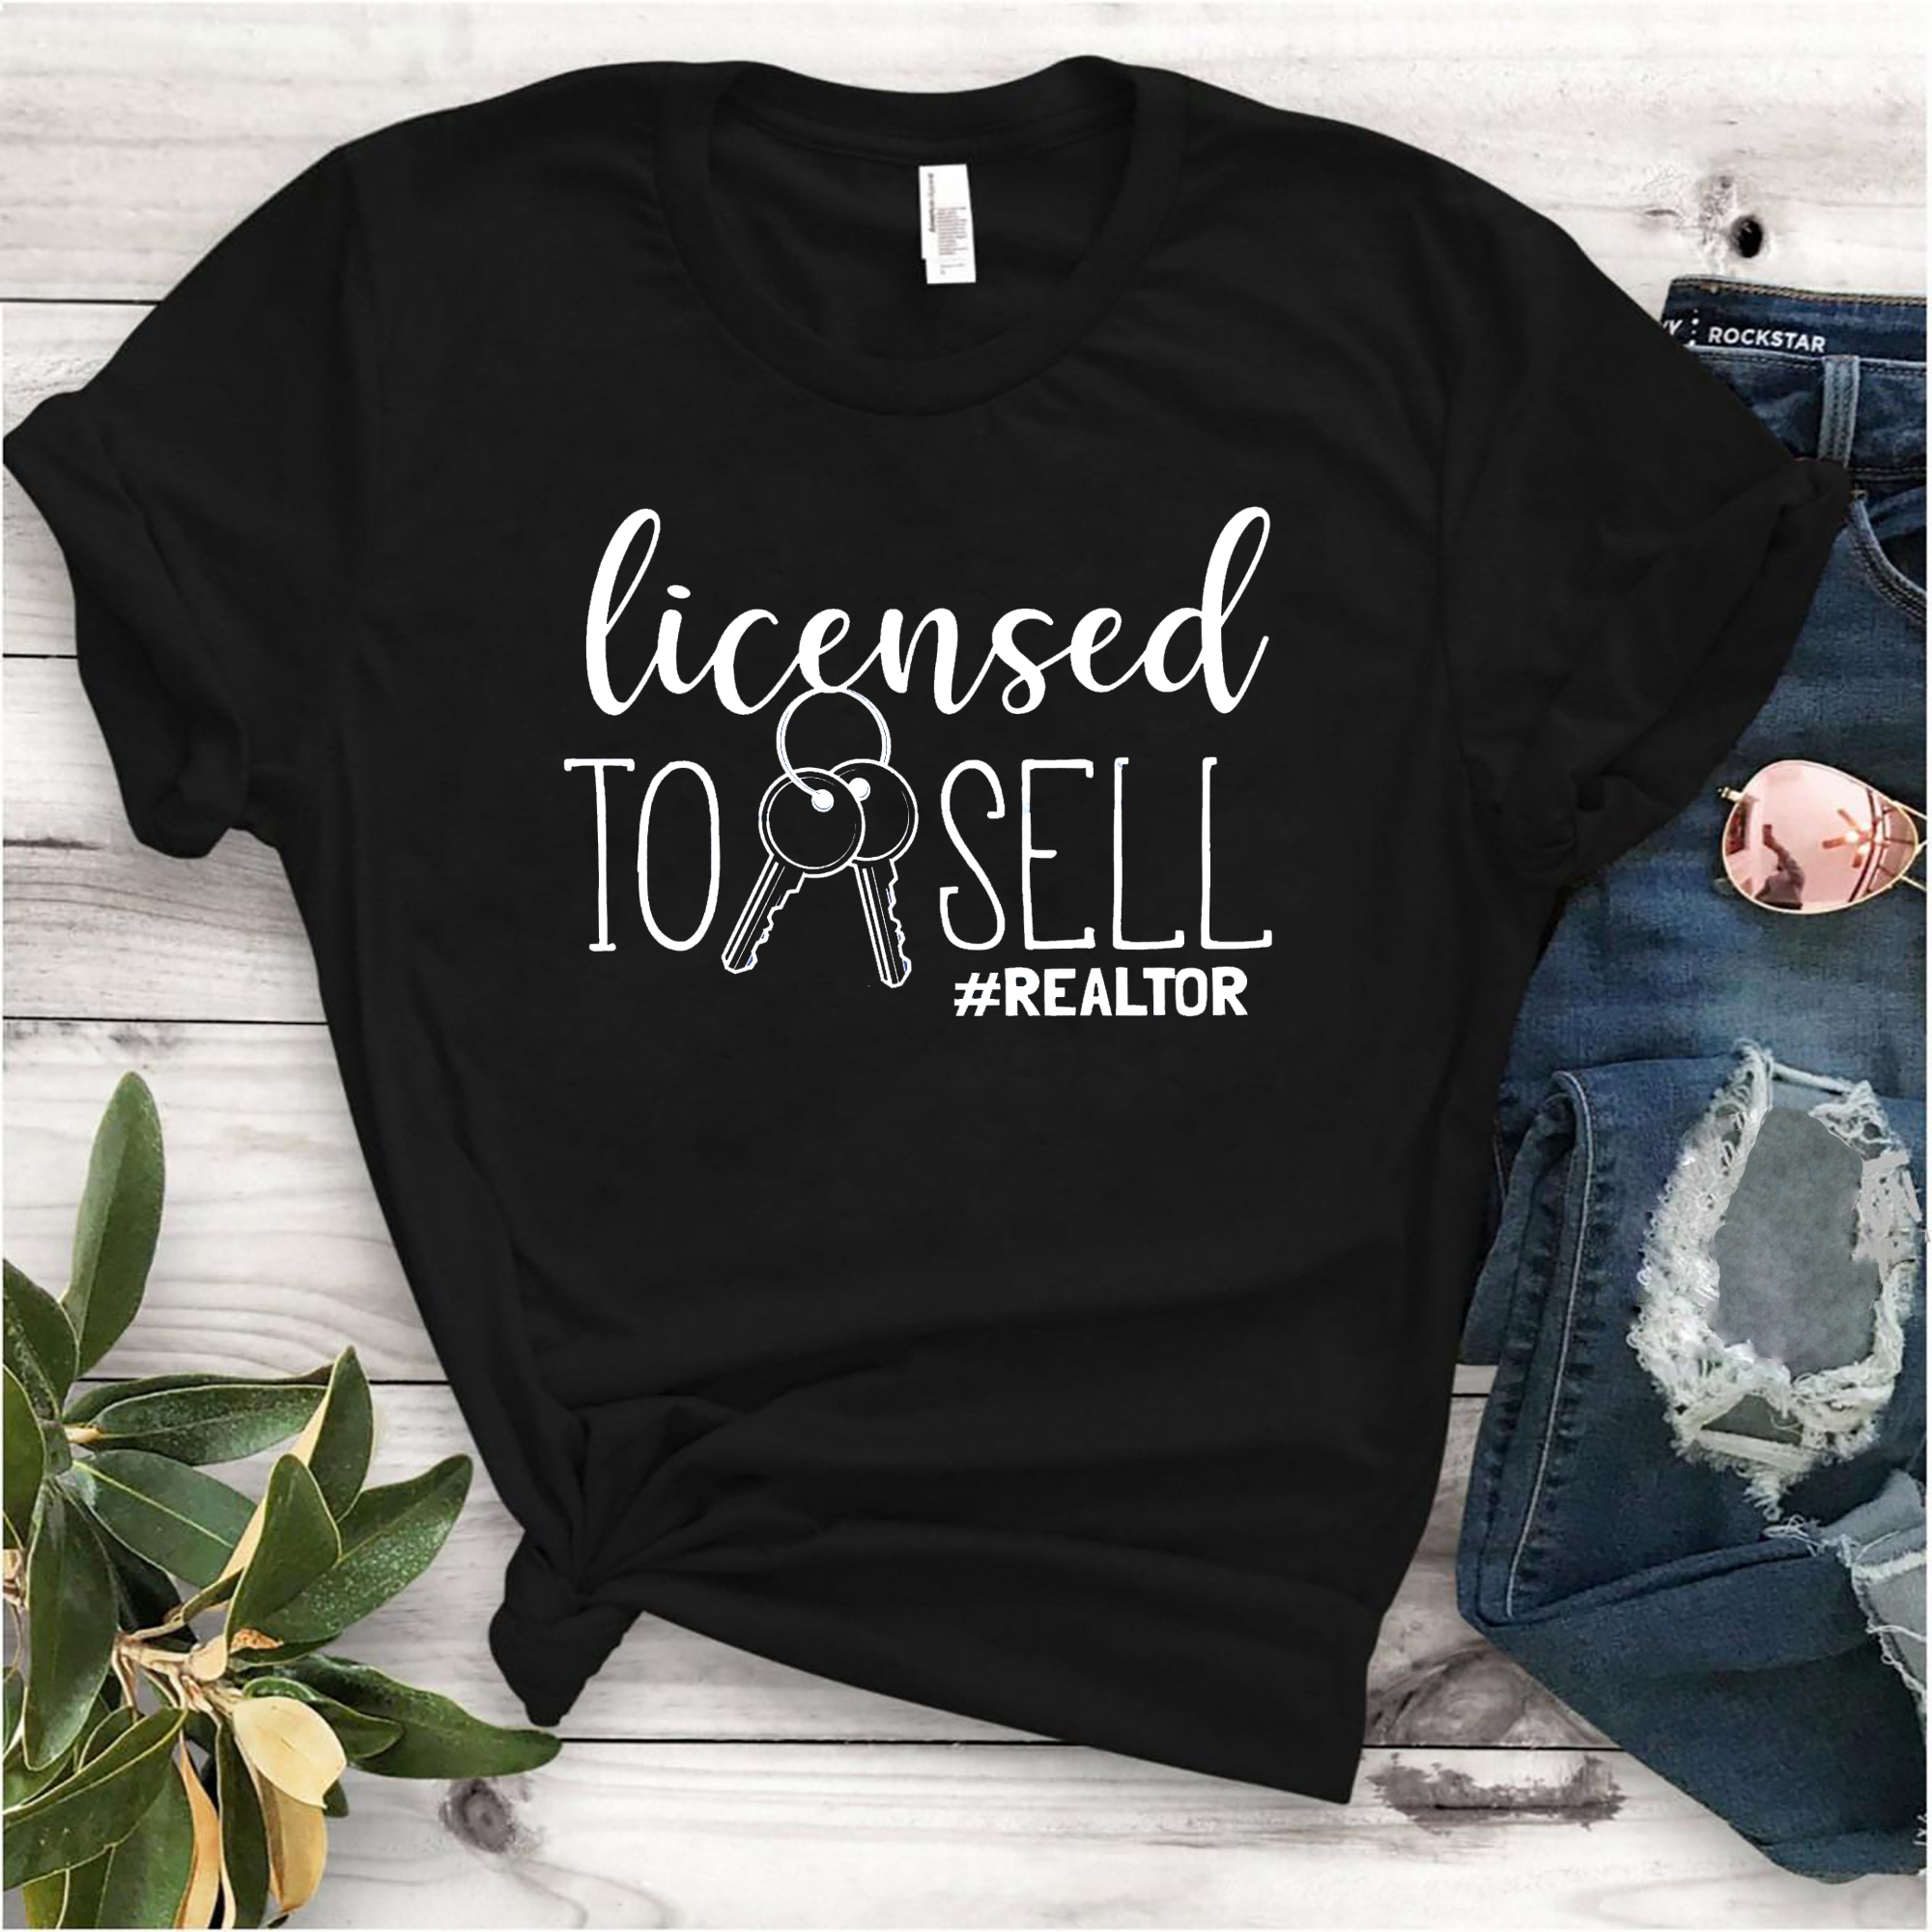 Funny Licensed To Sell Realtor Shirt